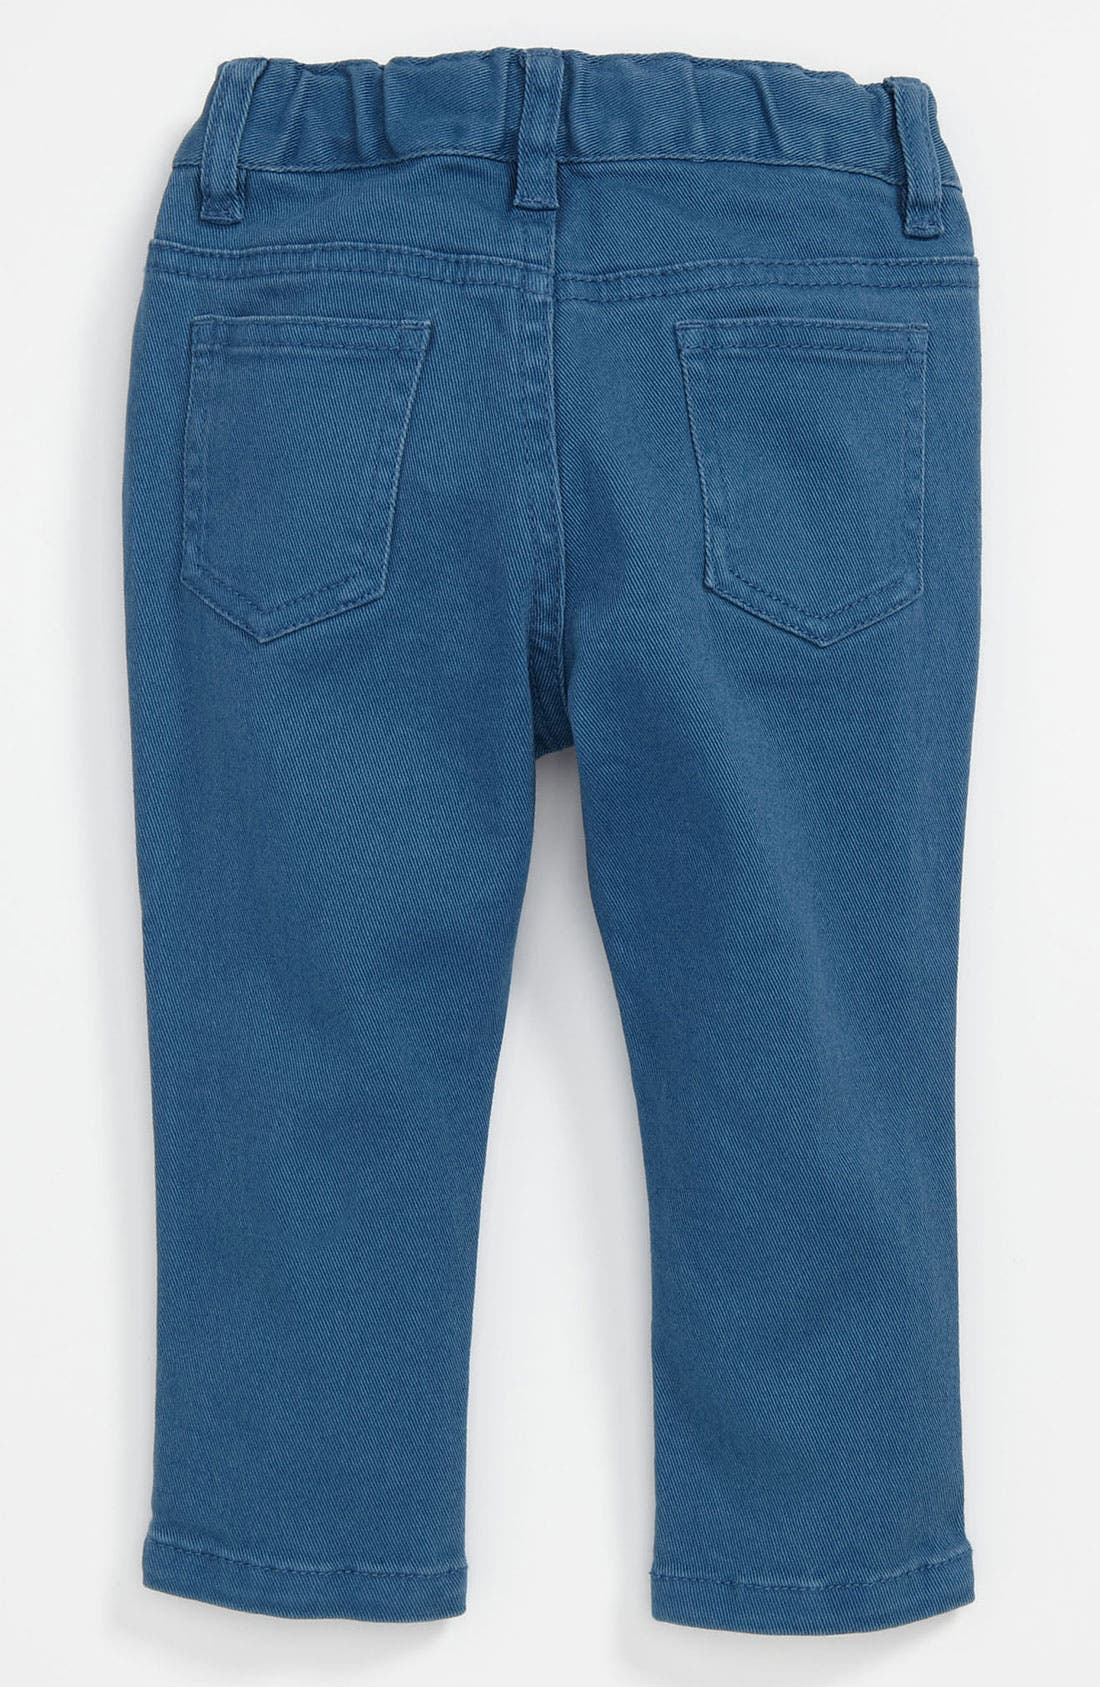 Main Image - Pumpkin Patch 'Skinny' Color Jeans (Infant)